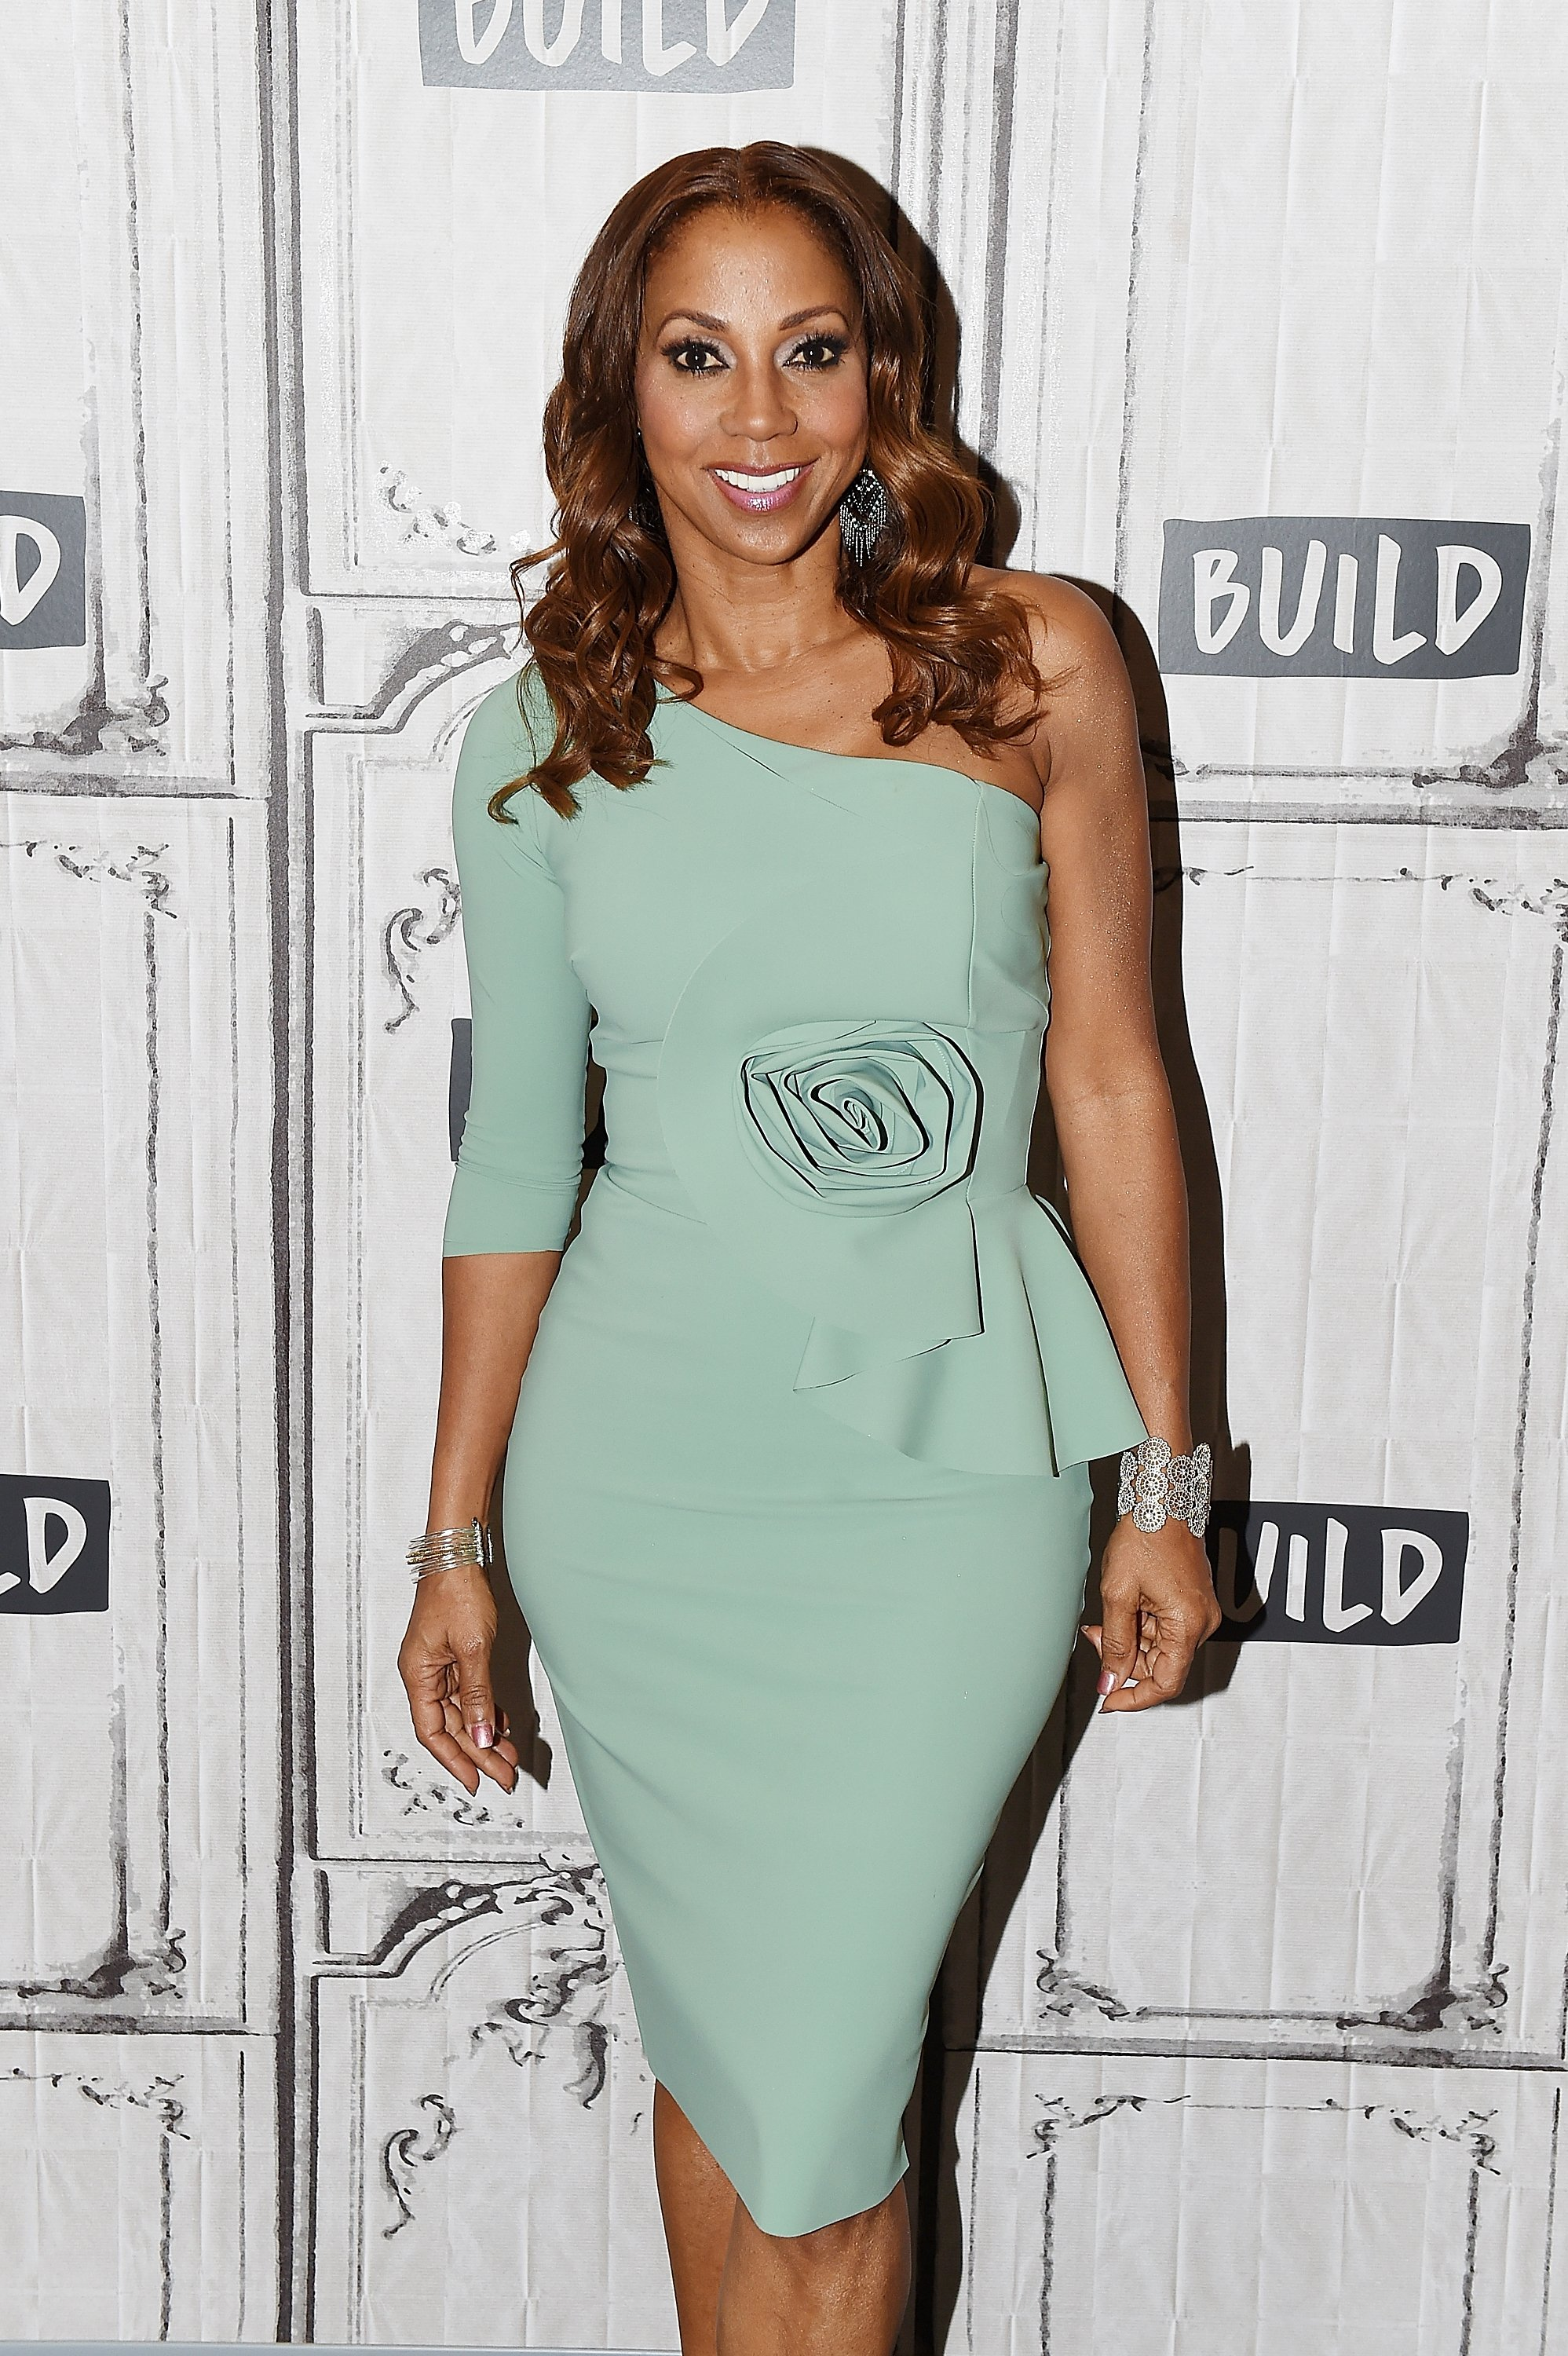 Image Credits: Getty Images / Nicholas Hunt | Holly Robinson Peete attends Build Series to discuss 'Meet the Peetes' at Build Studio on February 21, 2018 in New York City.